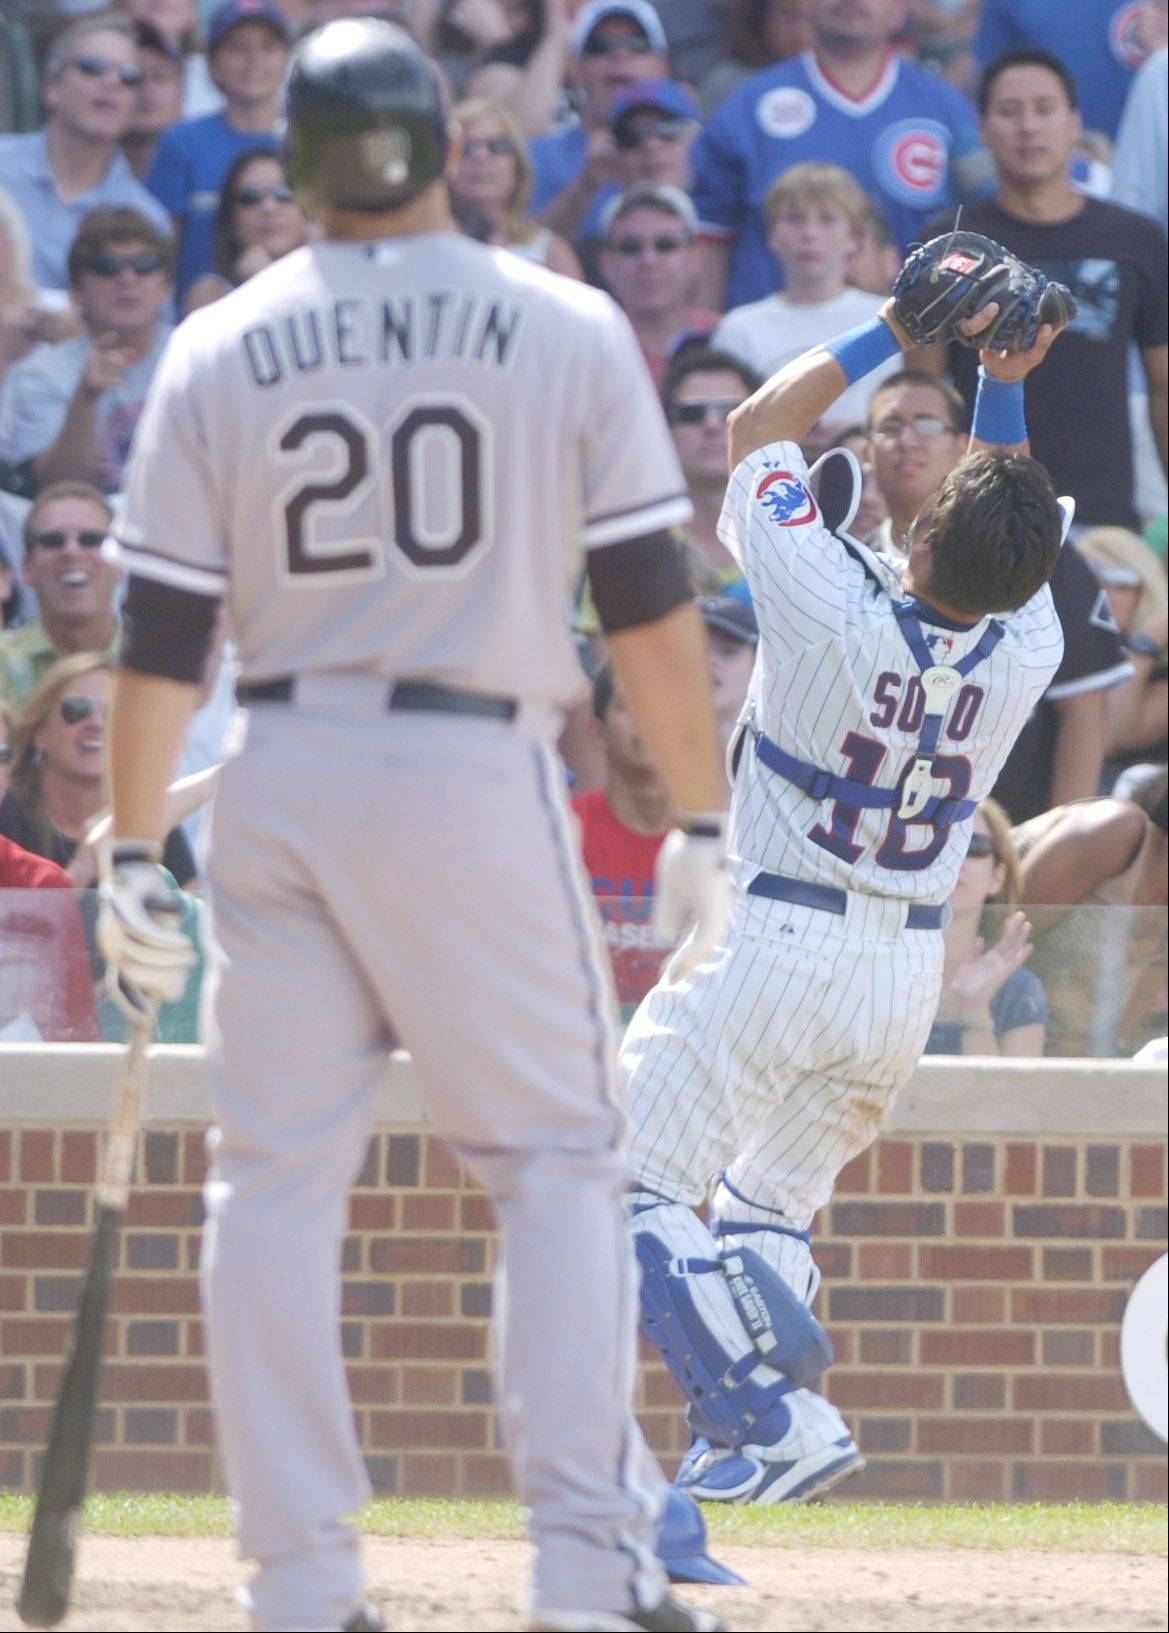 Carlos Quentin of the White Sox pops out to Cubs catcher Geovany Soto during the ninth inning of Sunday's game at Wrigley Field.